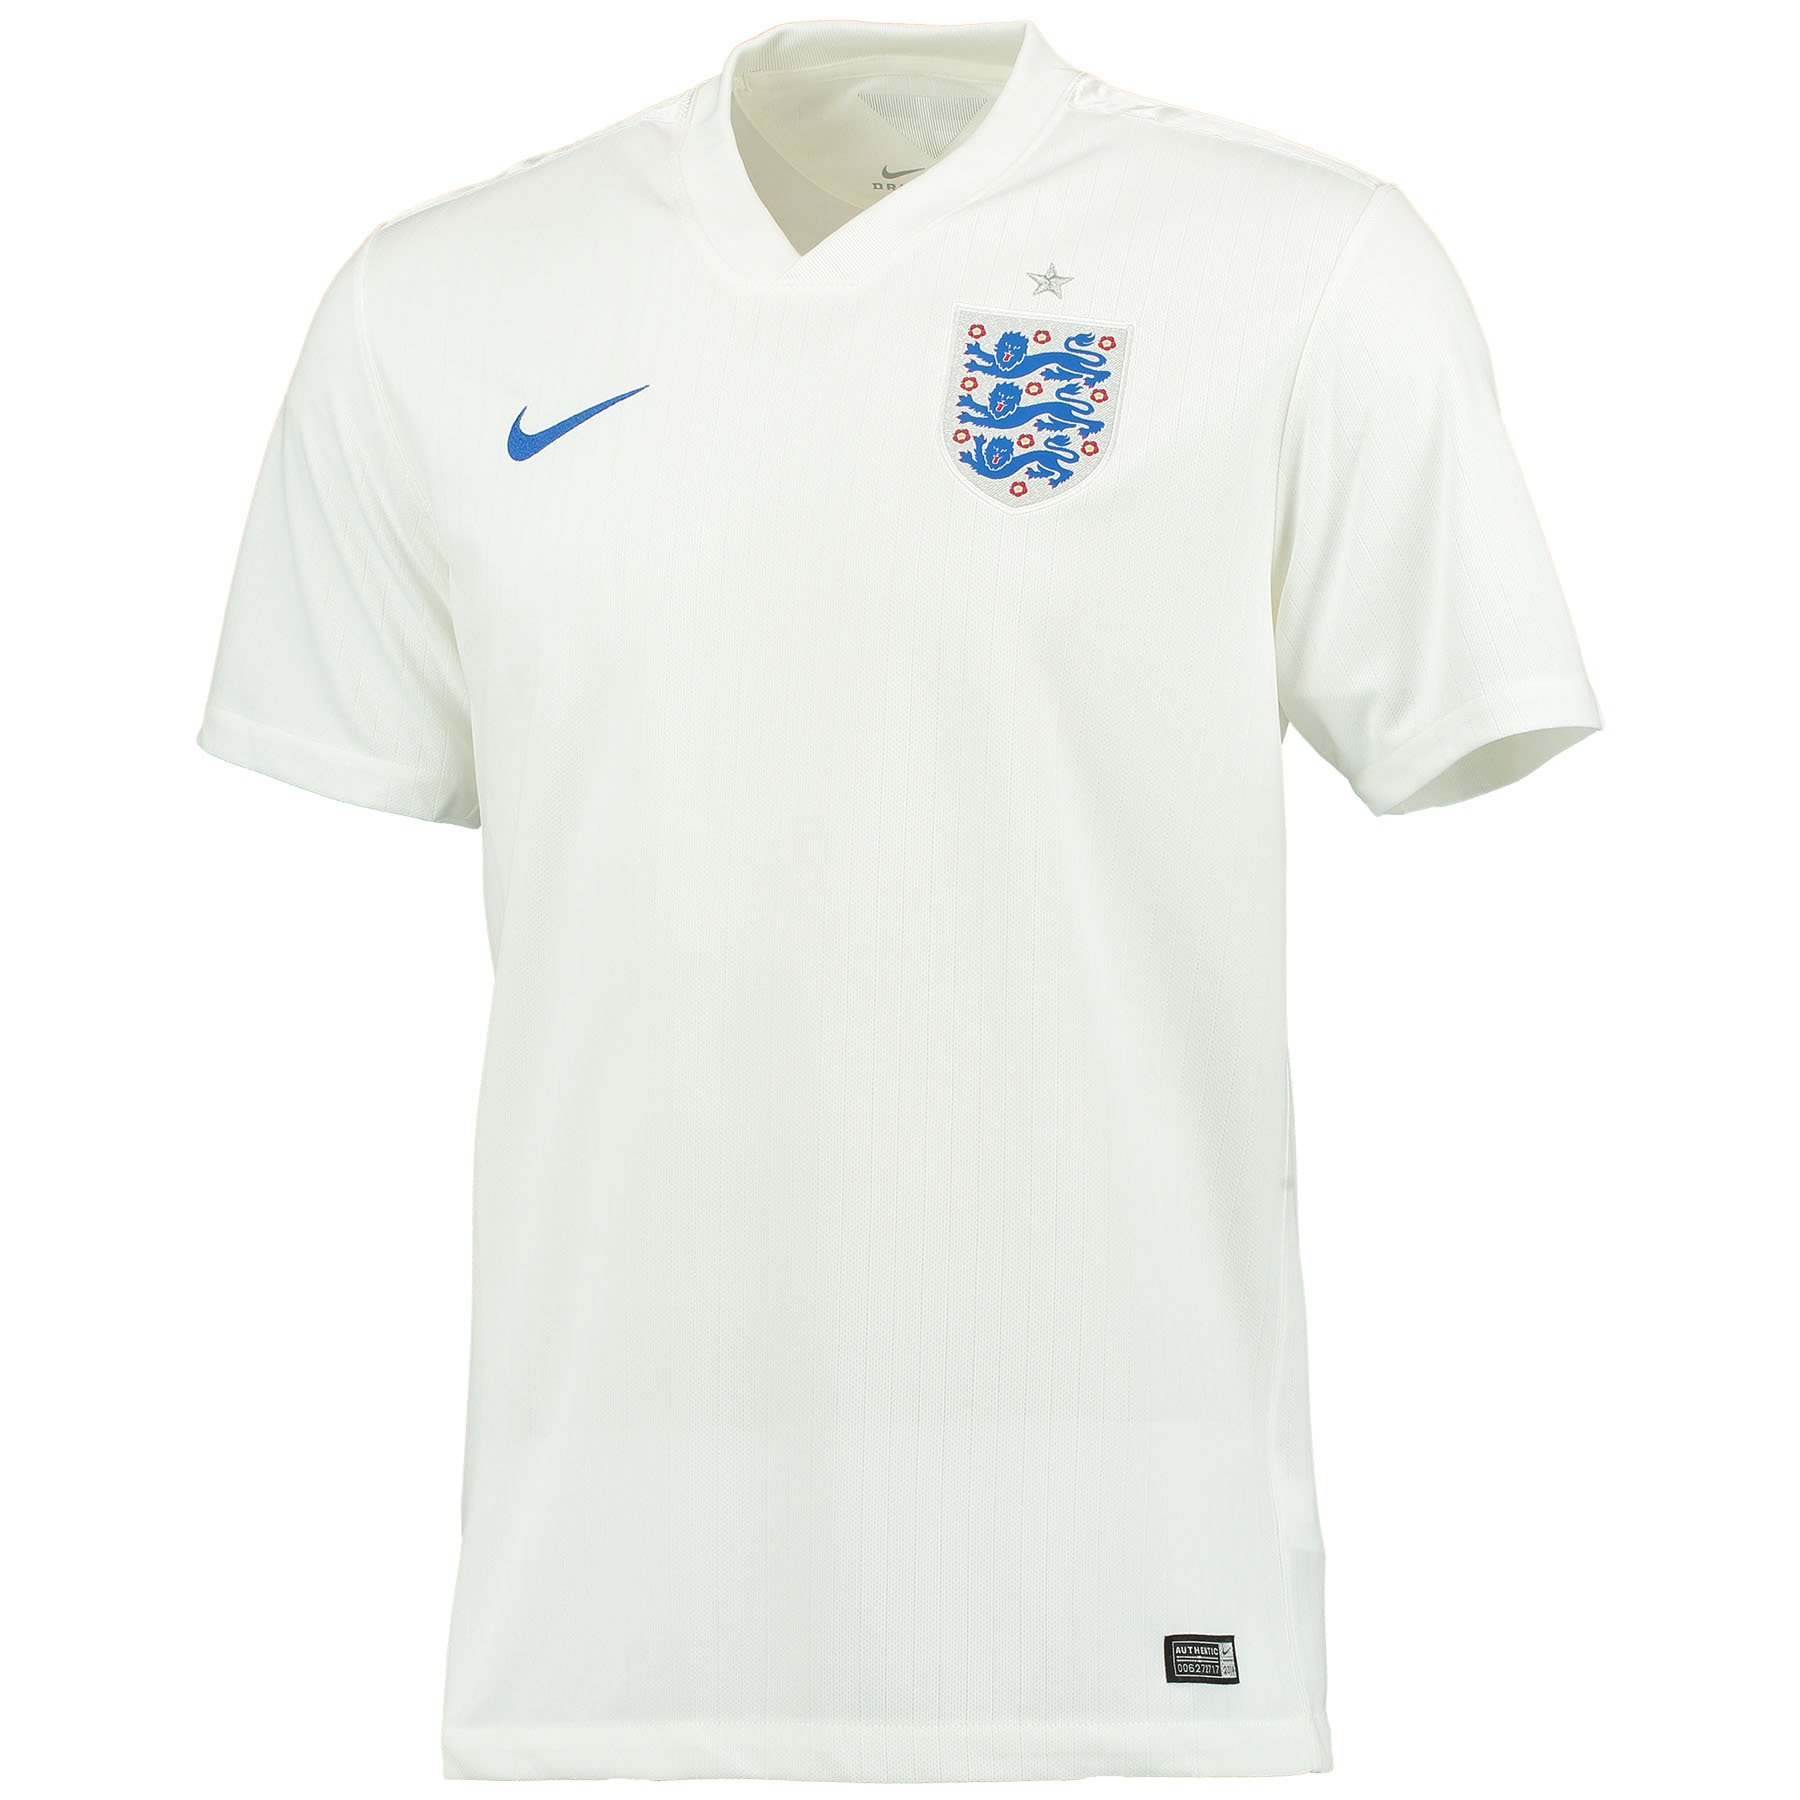 England Home Shirt 2014/15